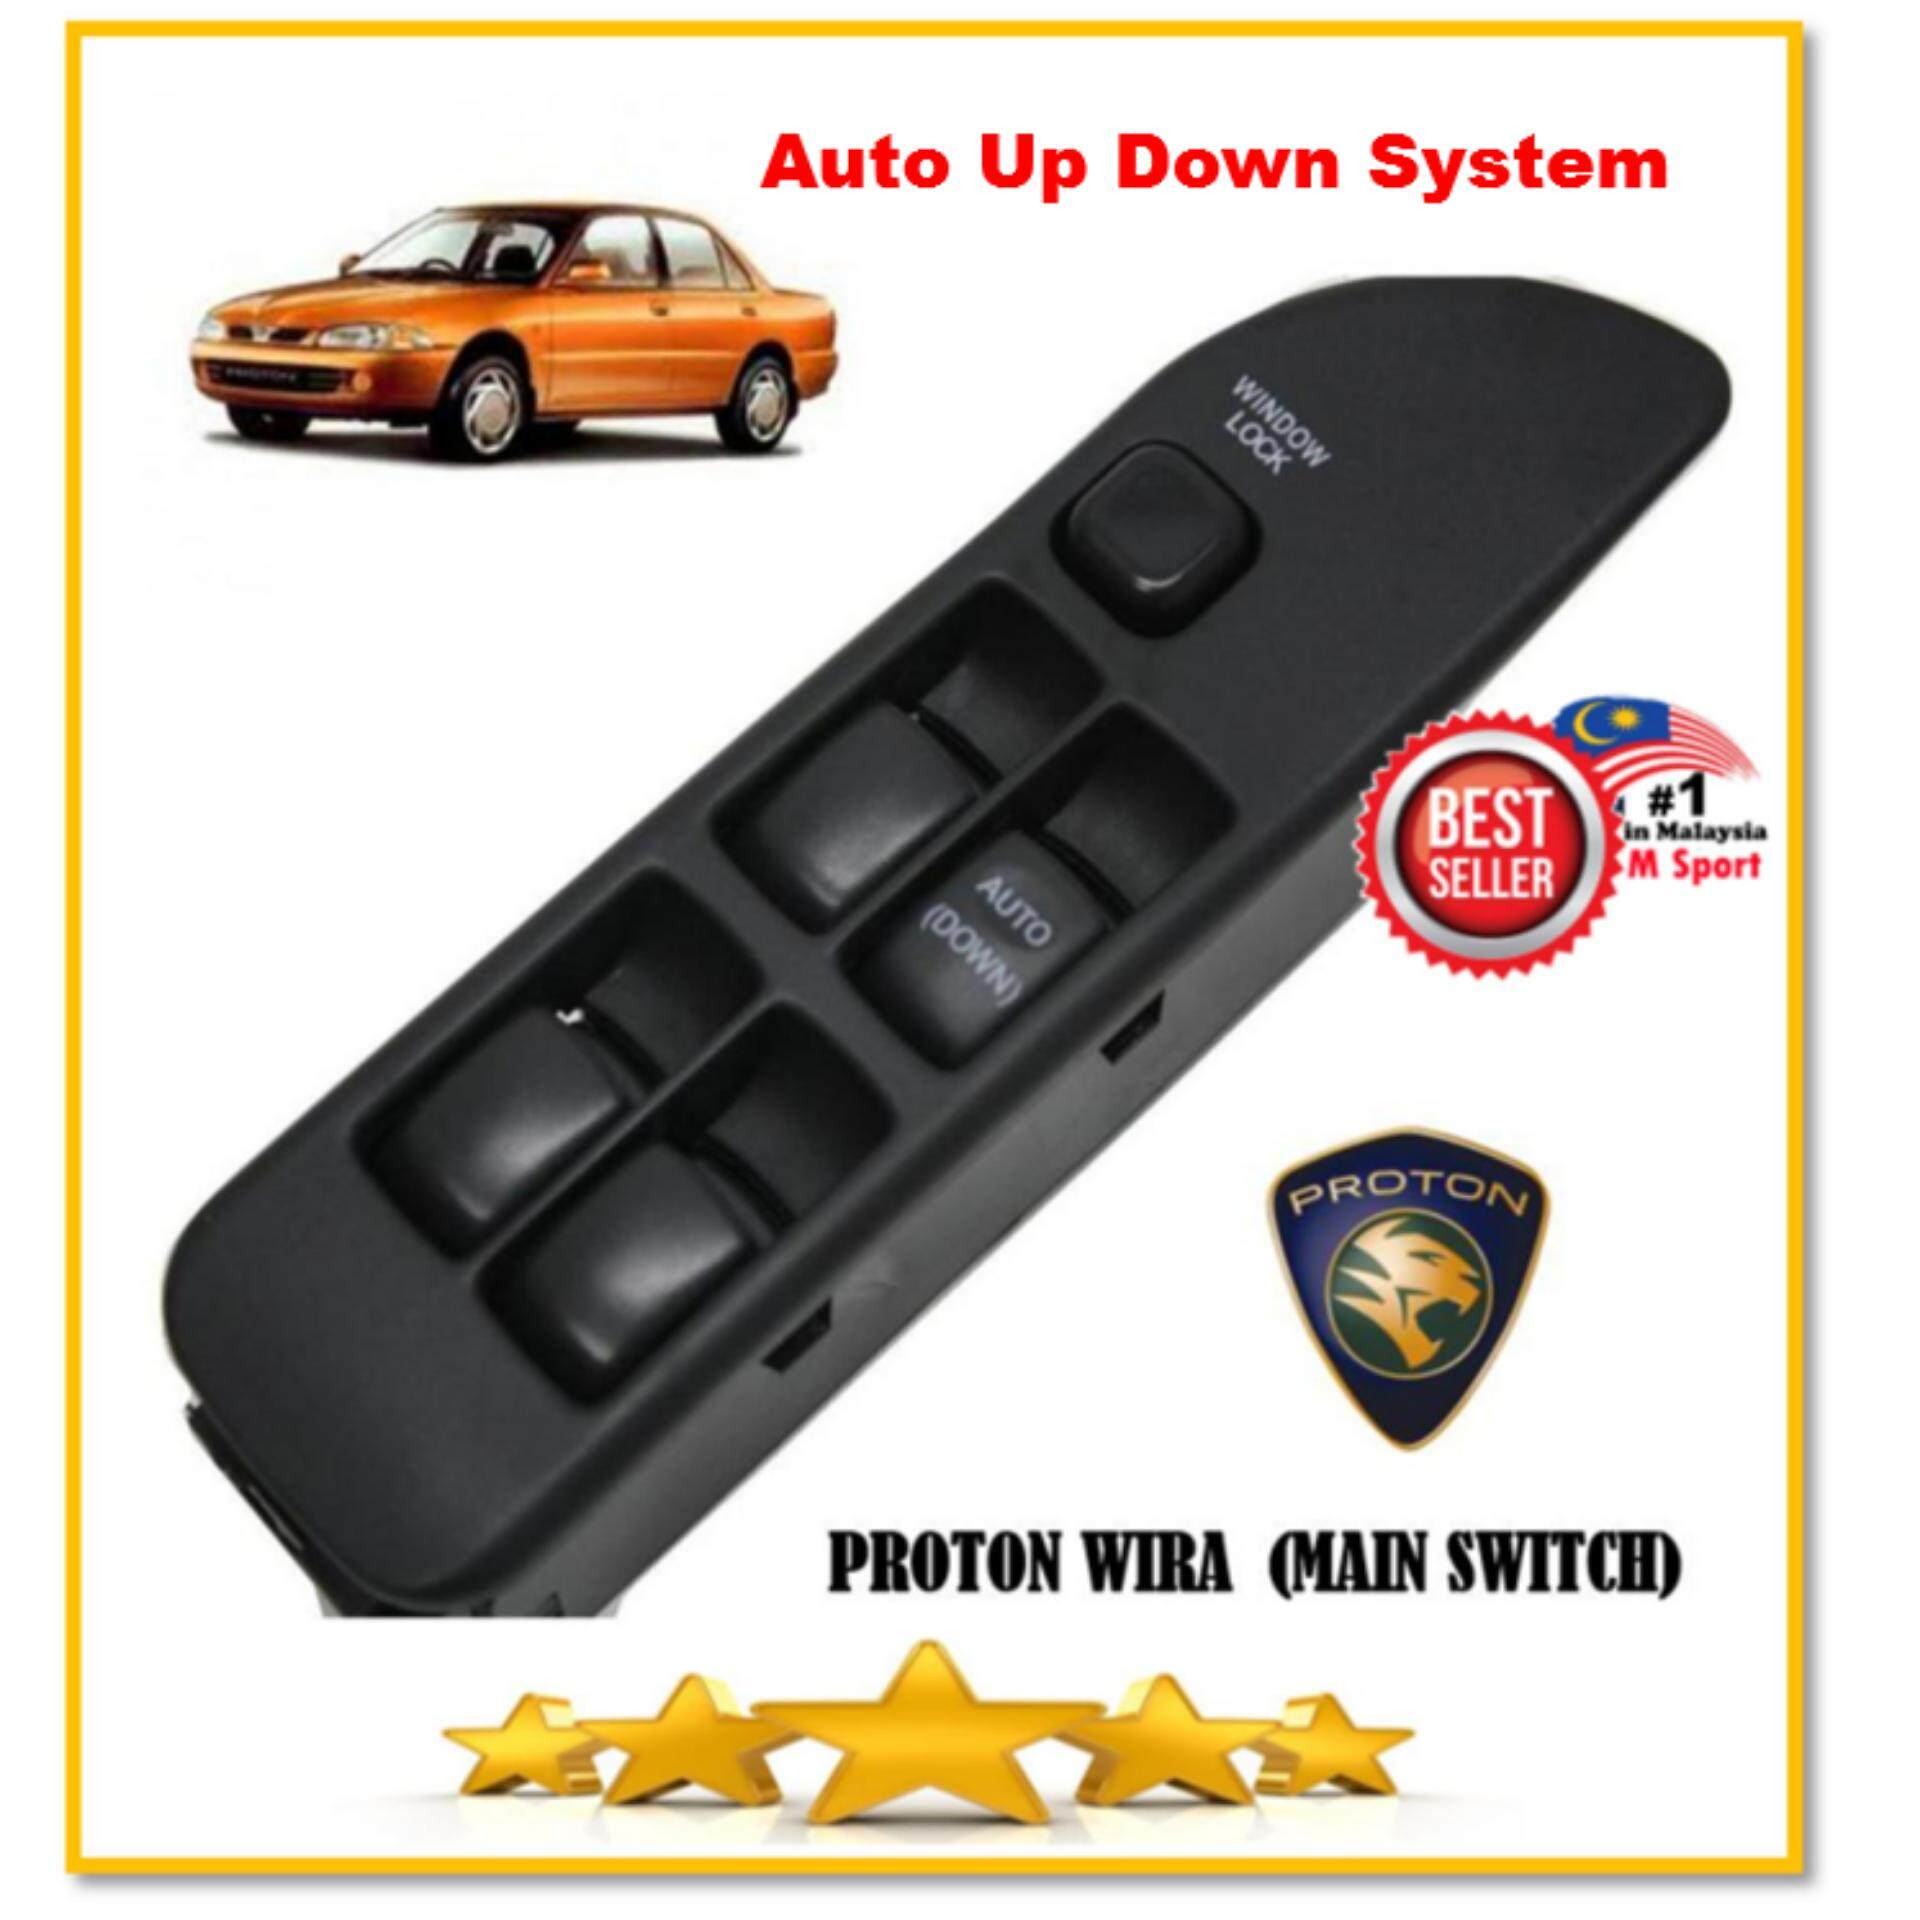 (AUTO UP DOWN SYSTEM) Proton Wira Power Window Main Switch